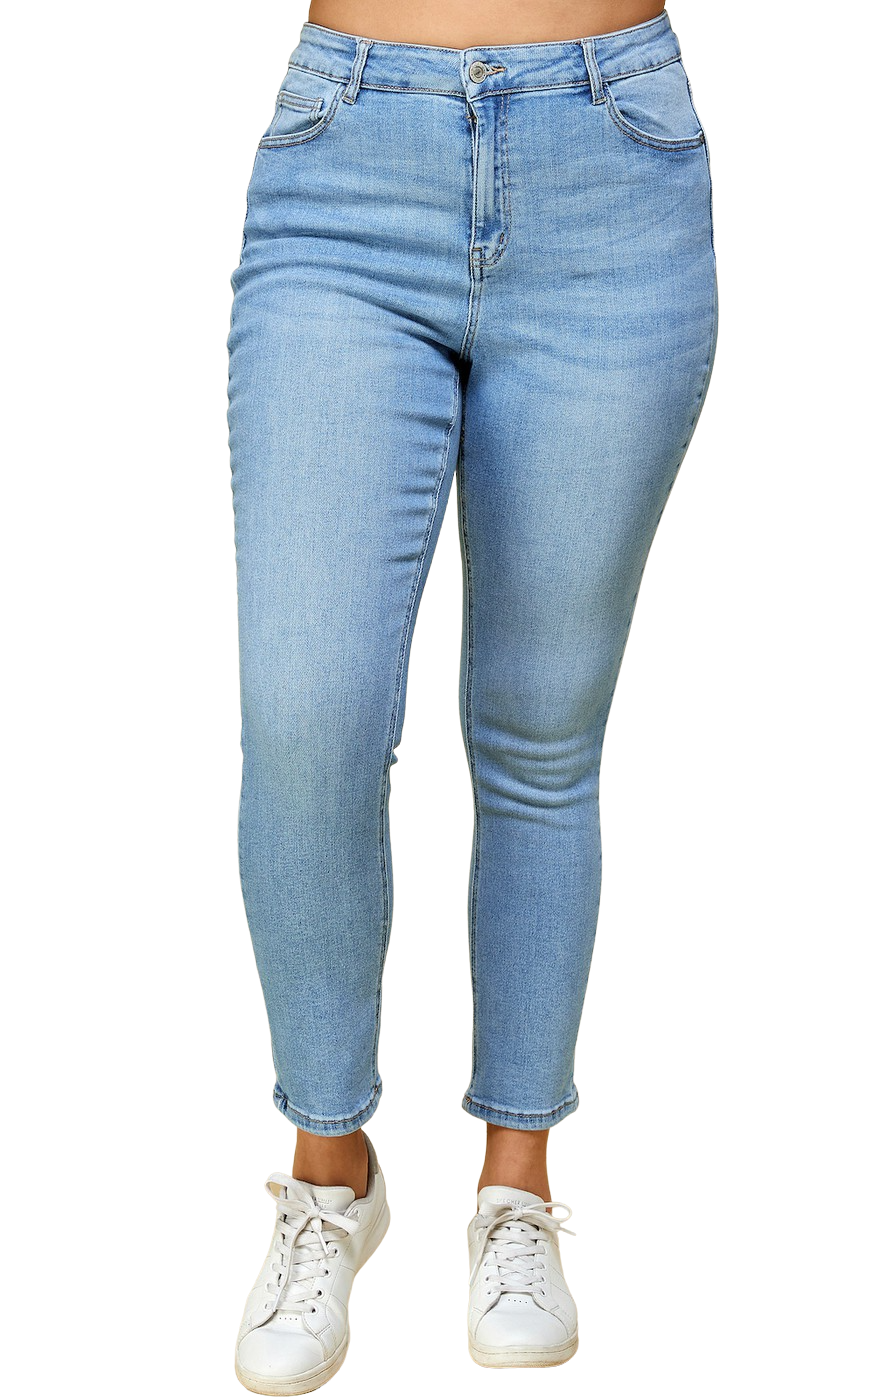 Jeans | Plus Size Skinny Jeans from Discount Diva